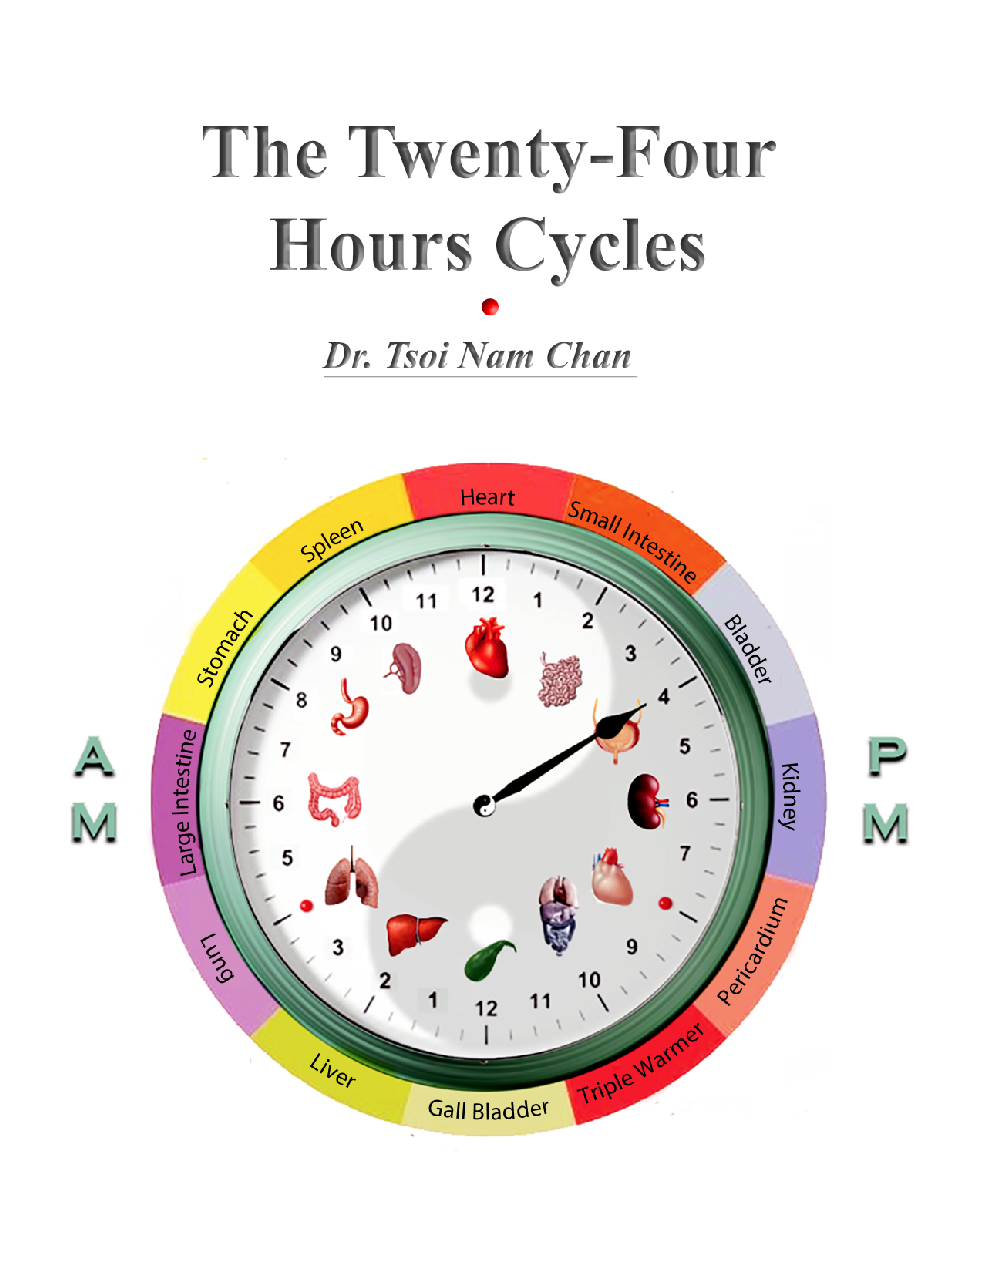 The Twenty-Four Hours Cycles